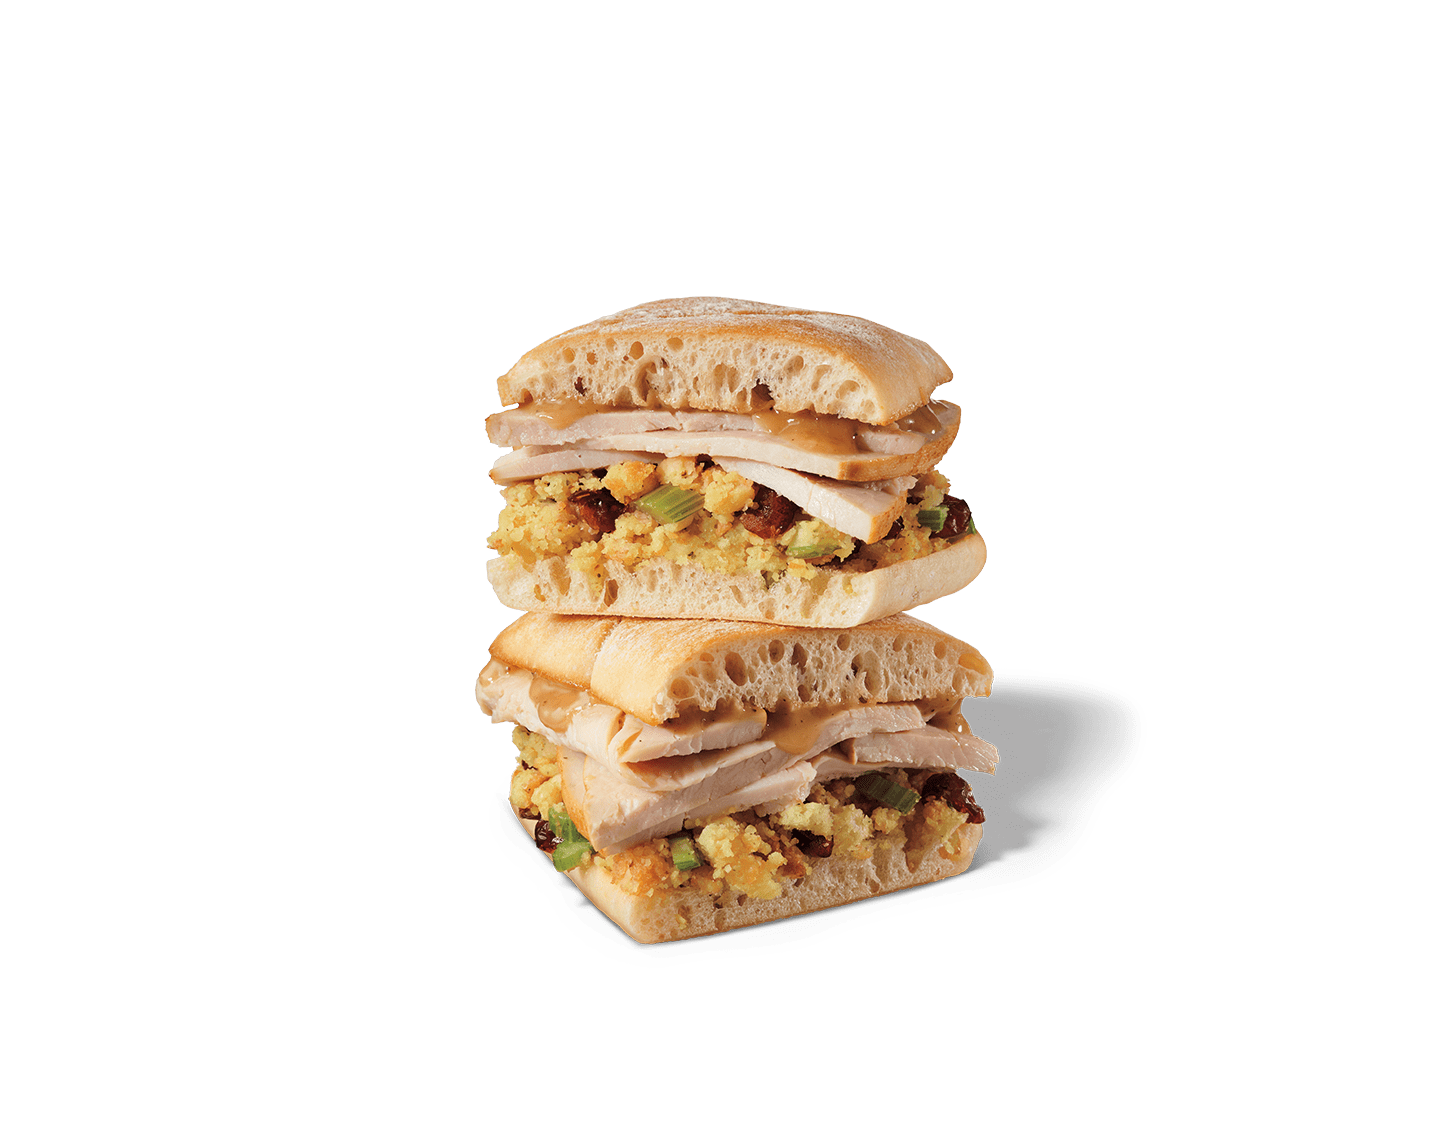 Sliced turkey breast, cranberry-herb stuffing and turkey gravy on toasted ciabatta bread.